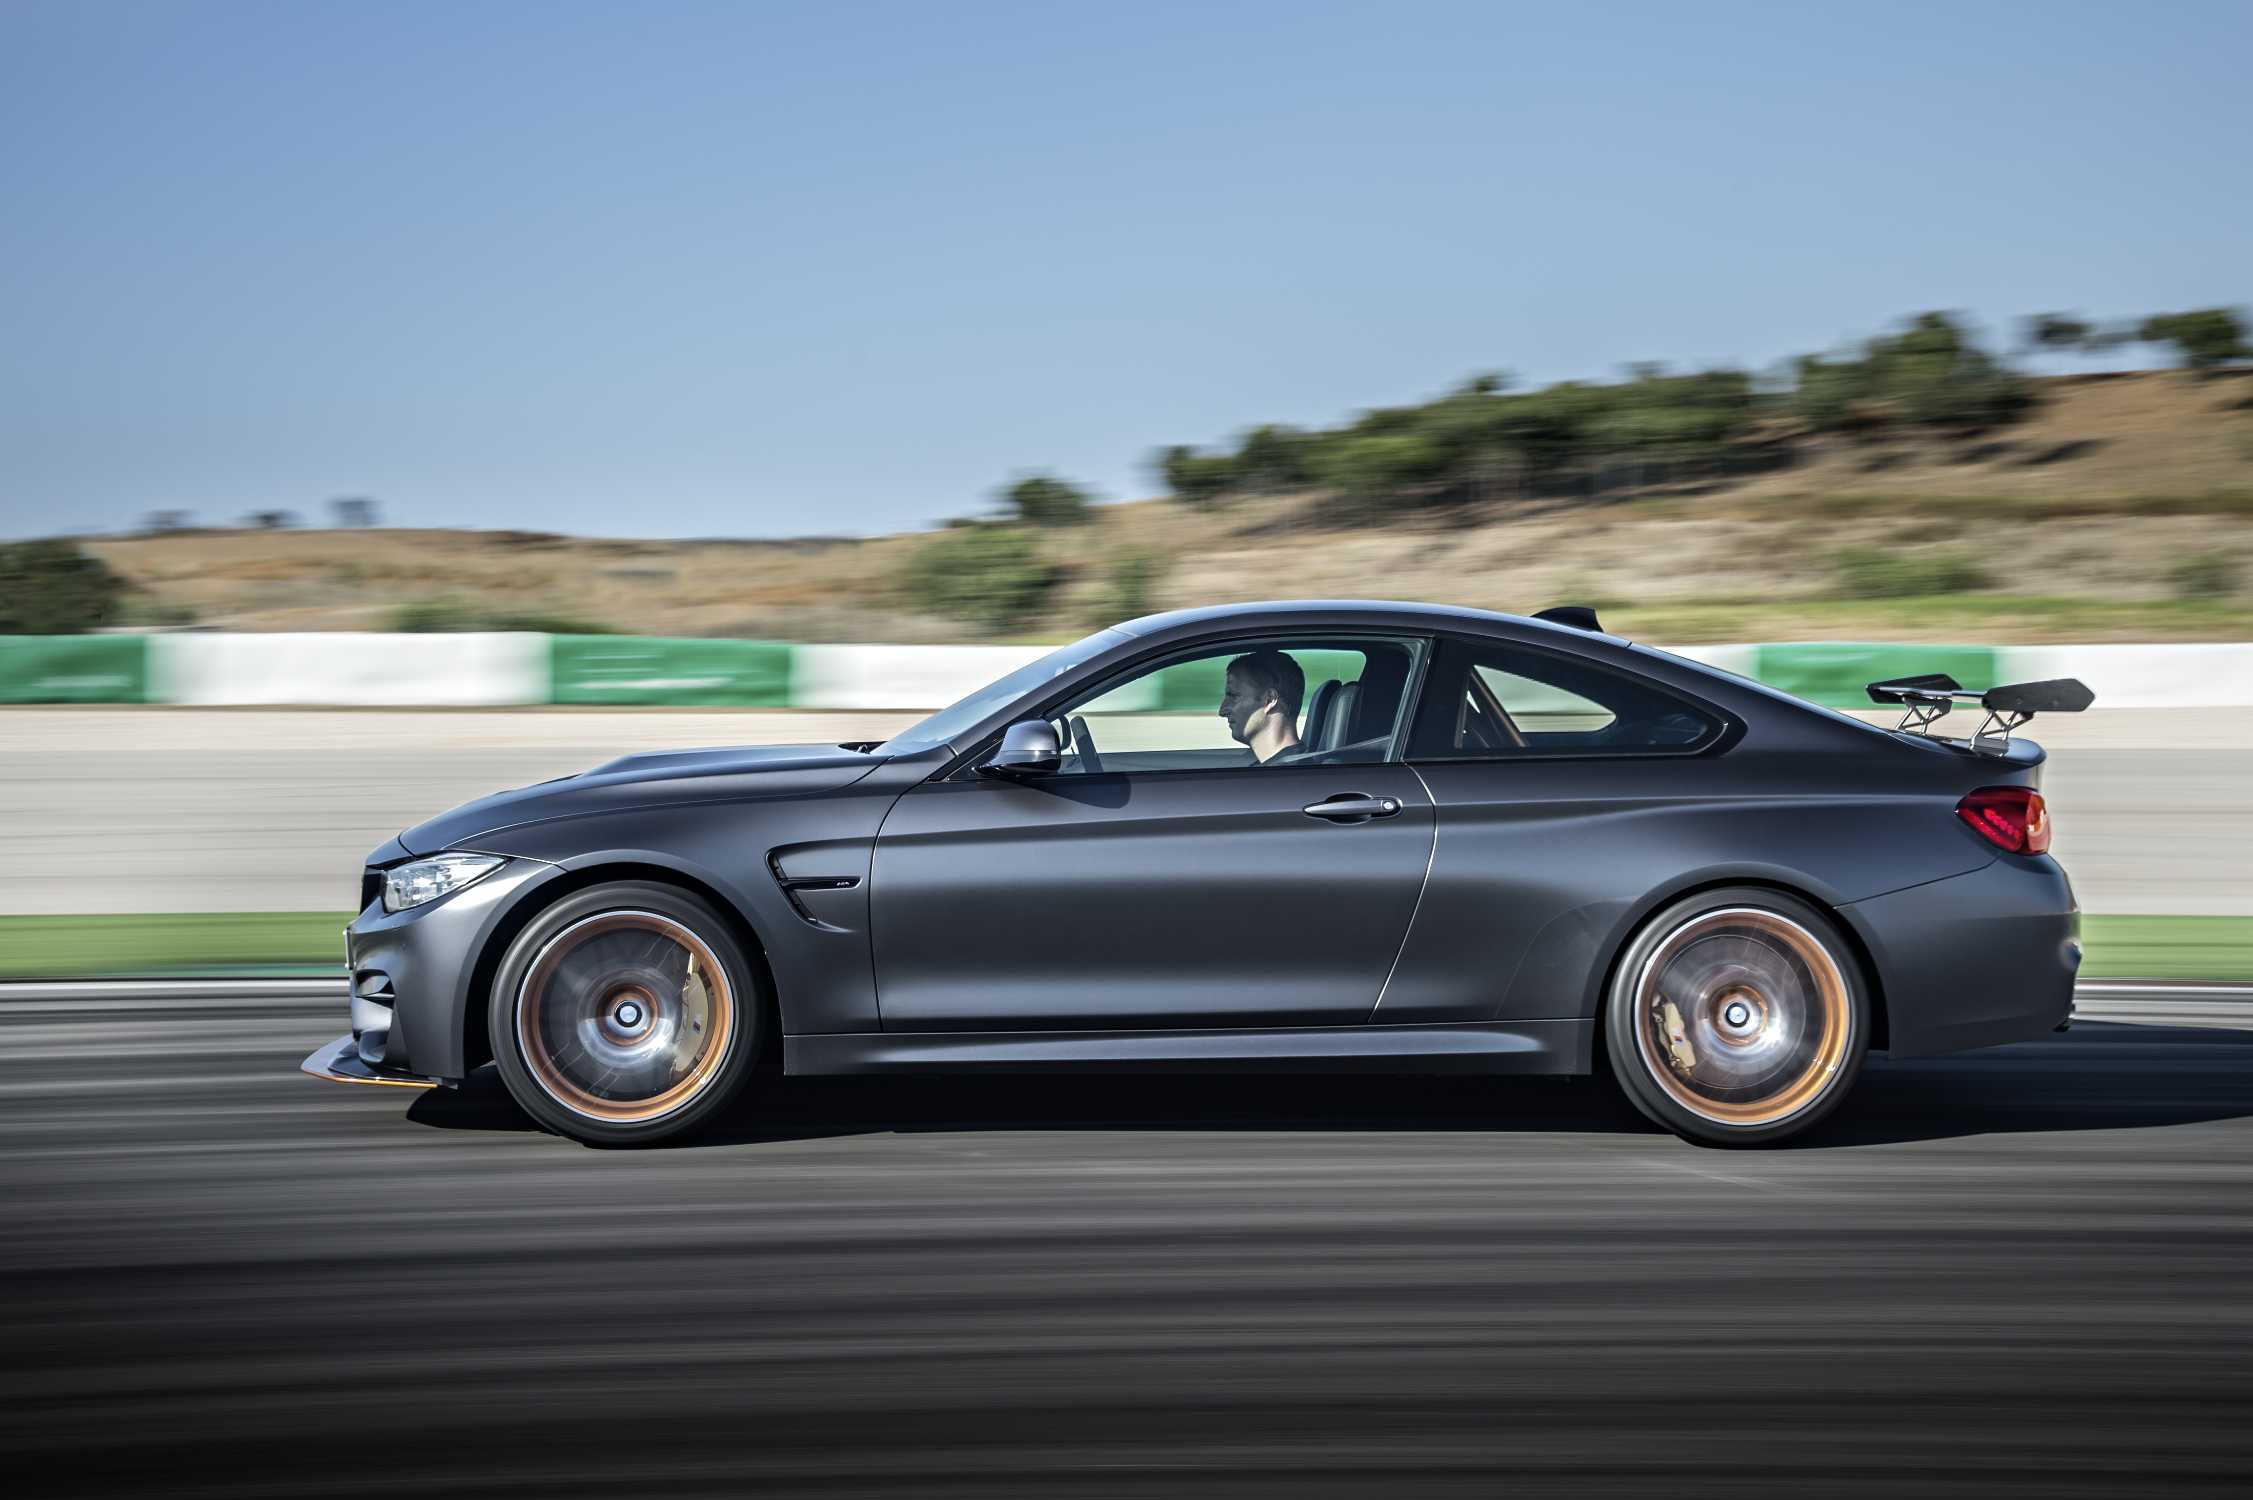 Bmw M4 Gts And Bmw 3 0 Csl Homage Receive 2015 Auto Bild Sports Car Of The Year Award